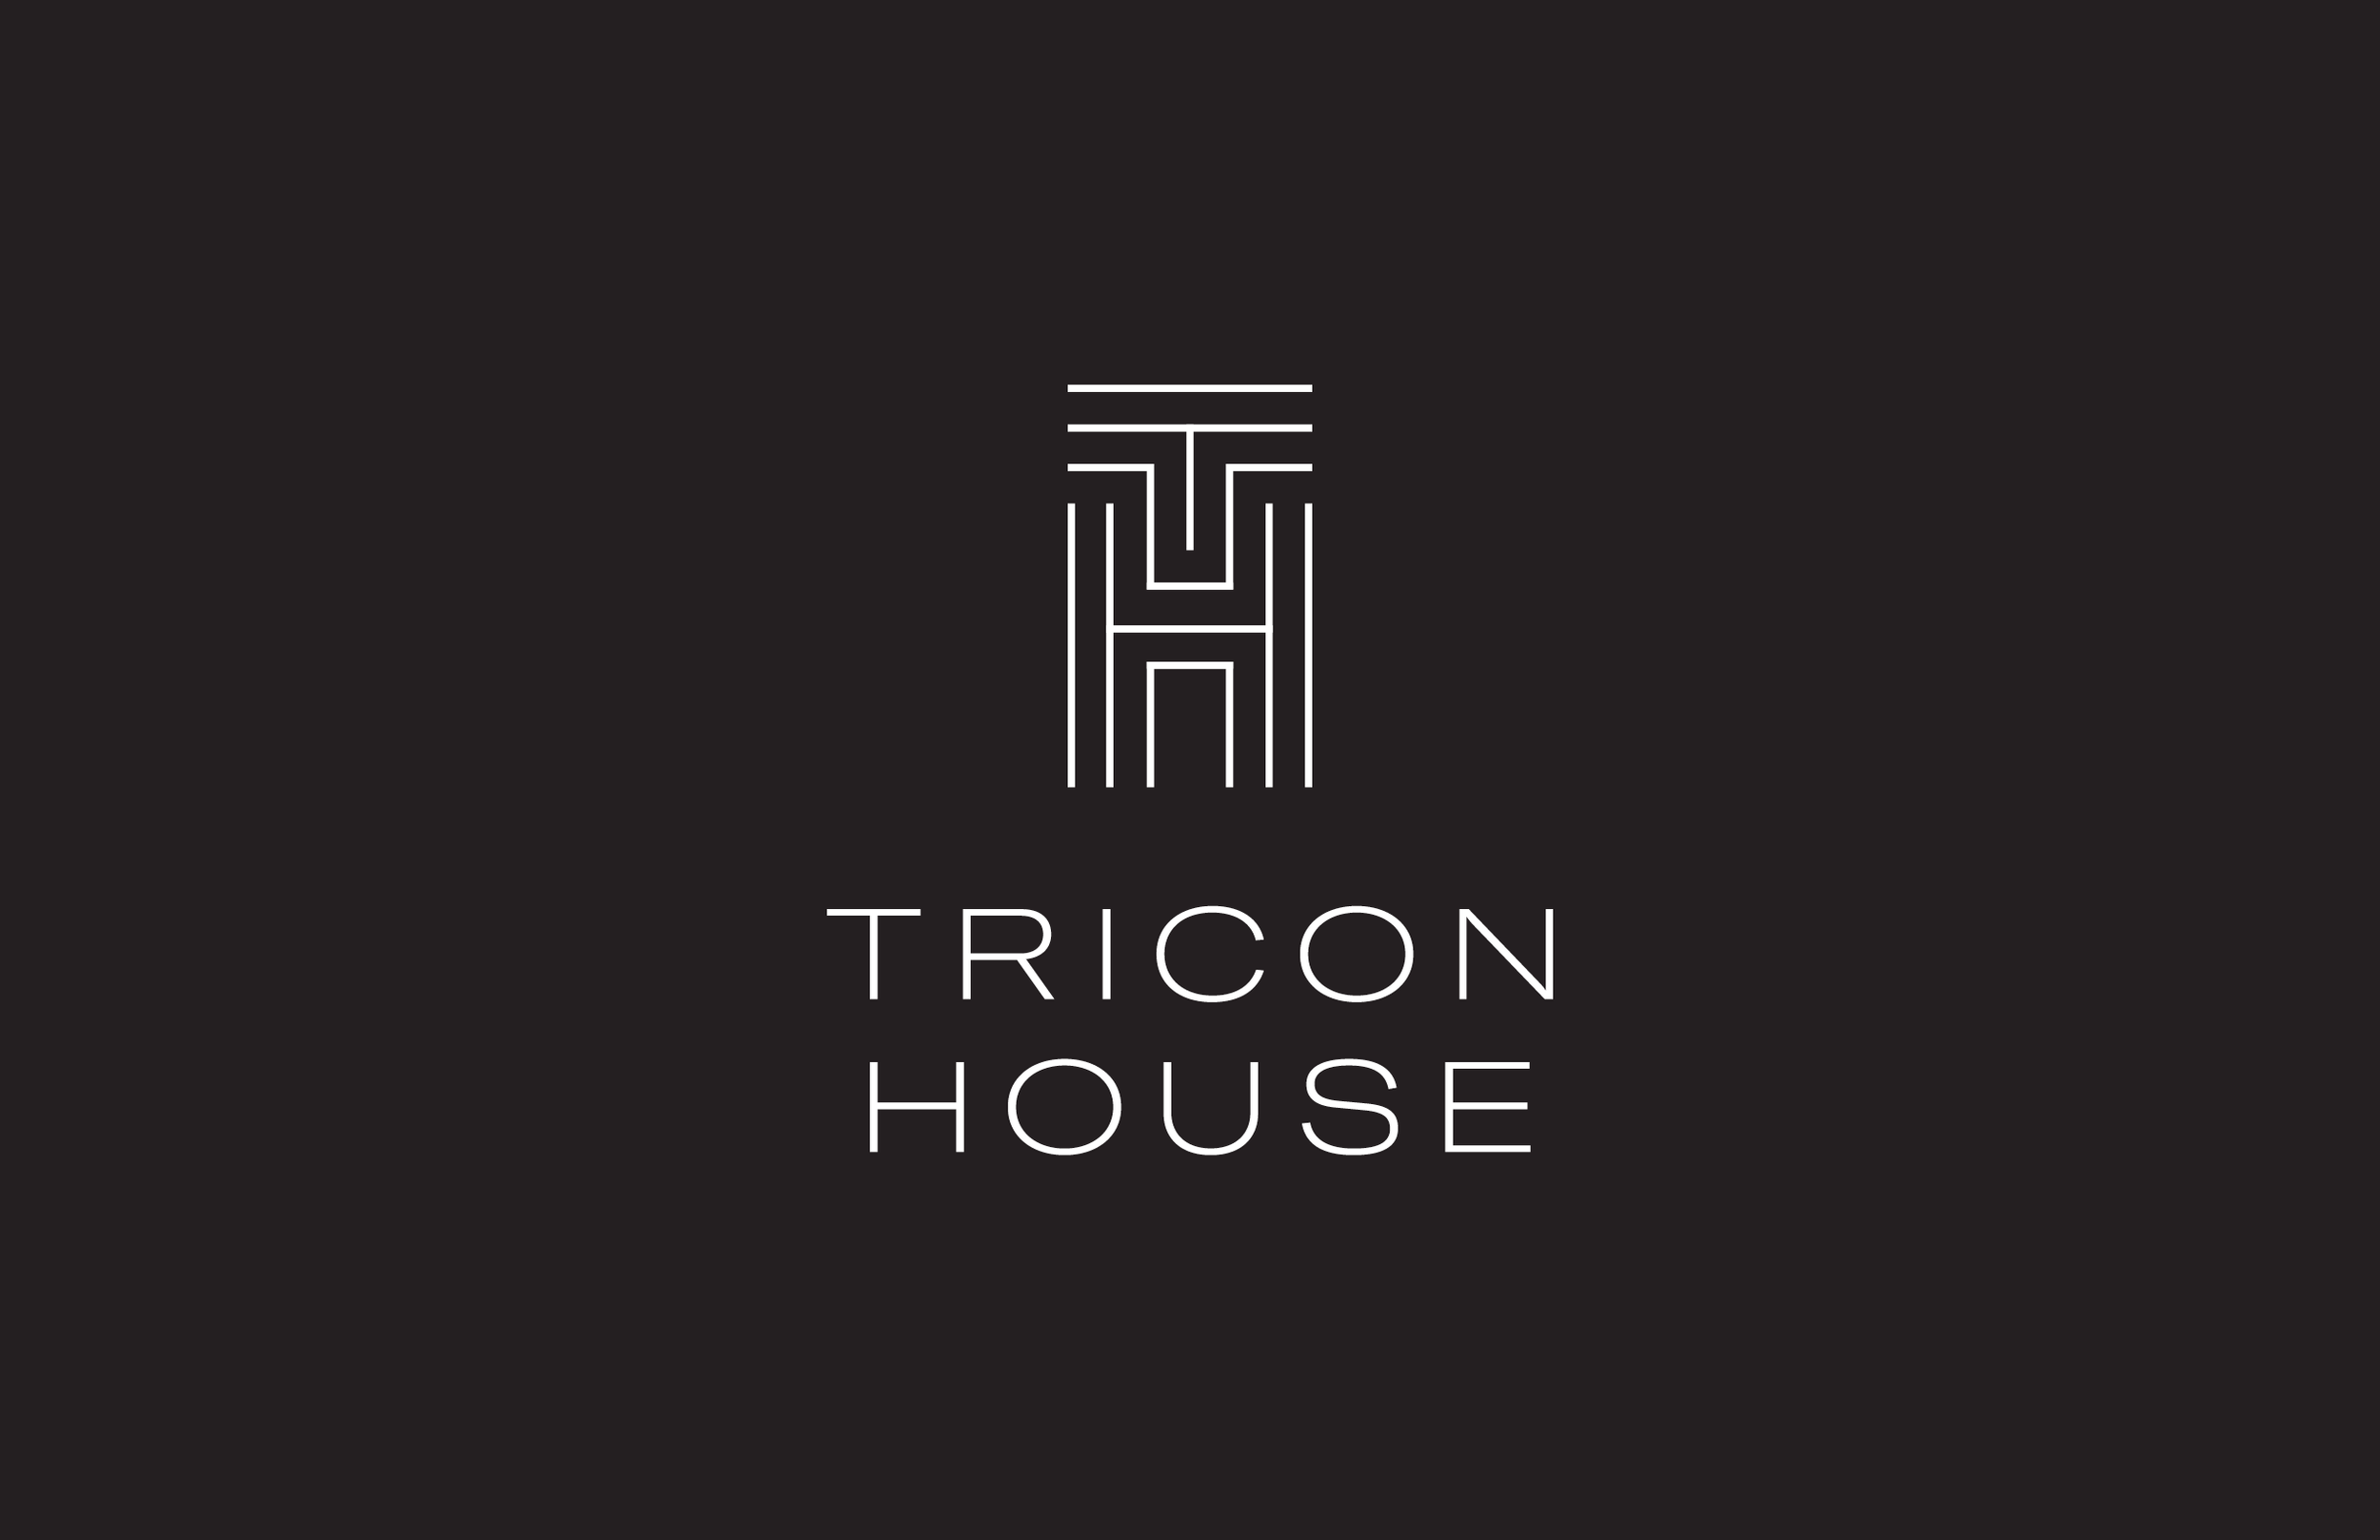 TriconHouse_01.png